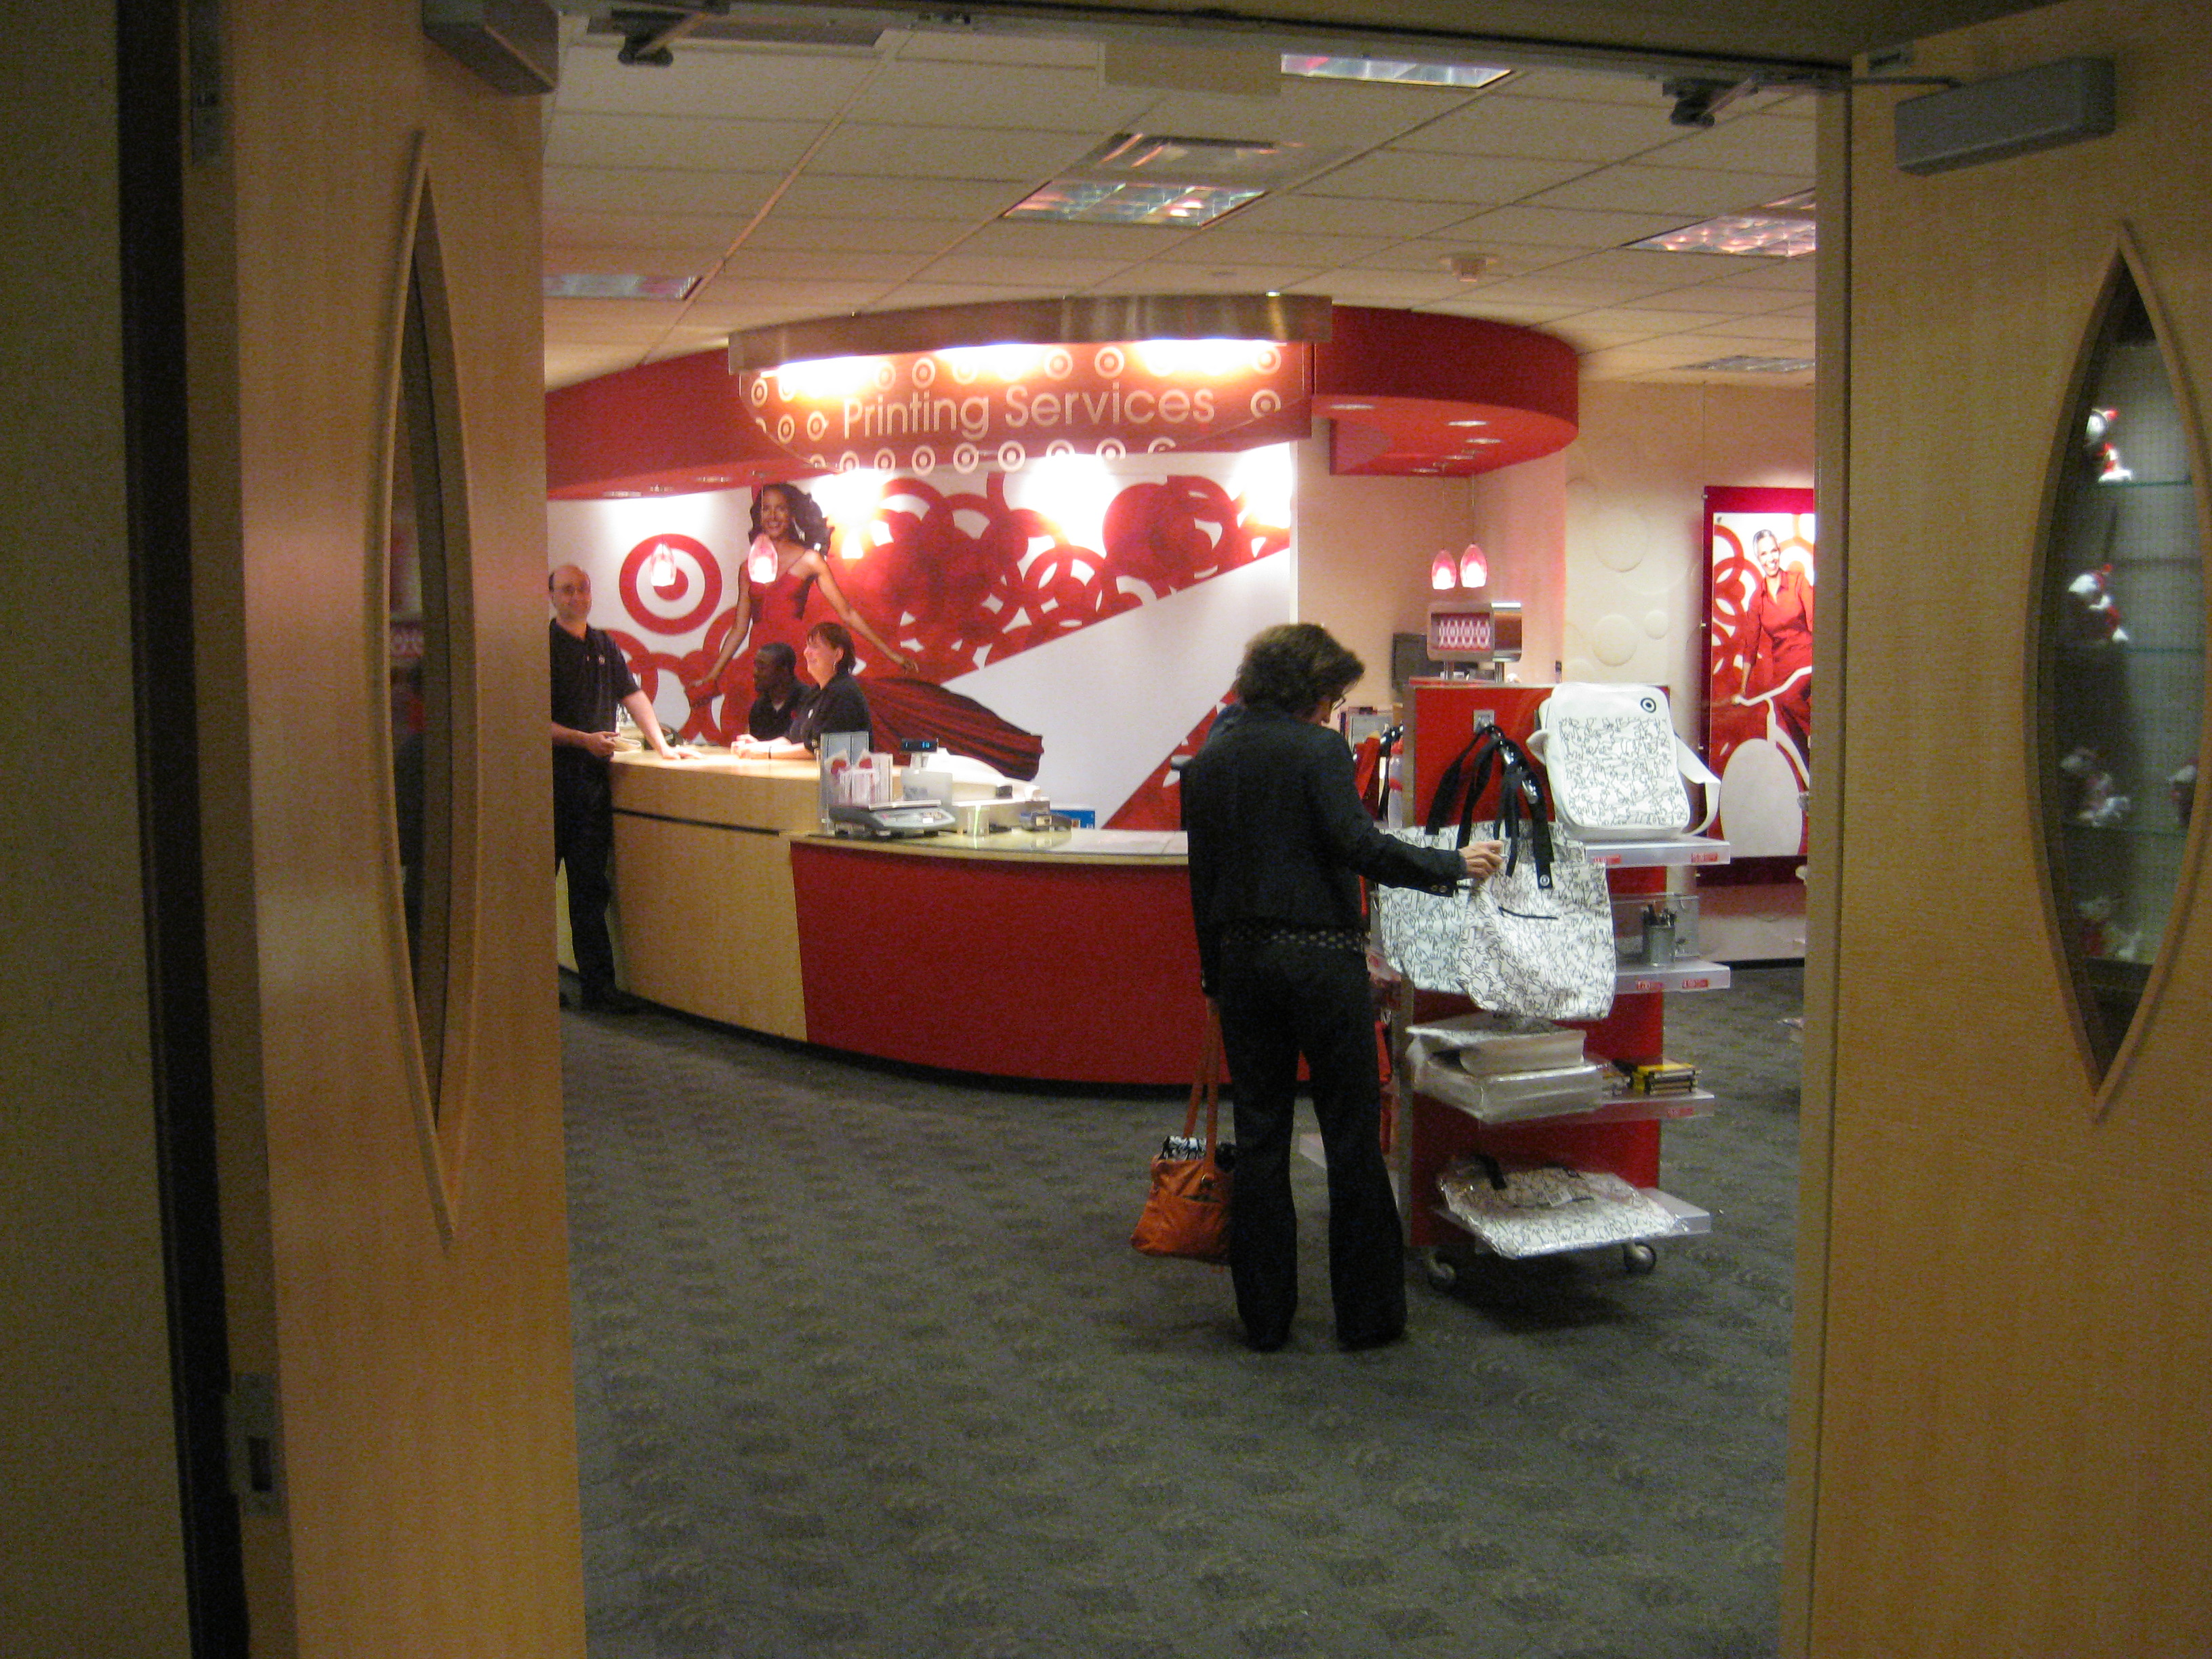 Target corporate office headquarters hq - Target Corporate Office Headquarters Hq 2